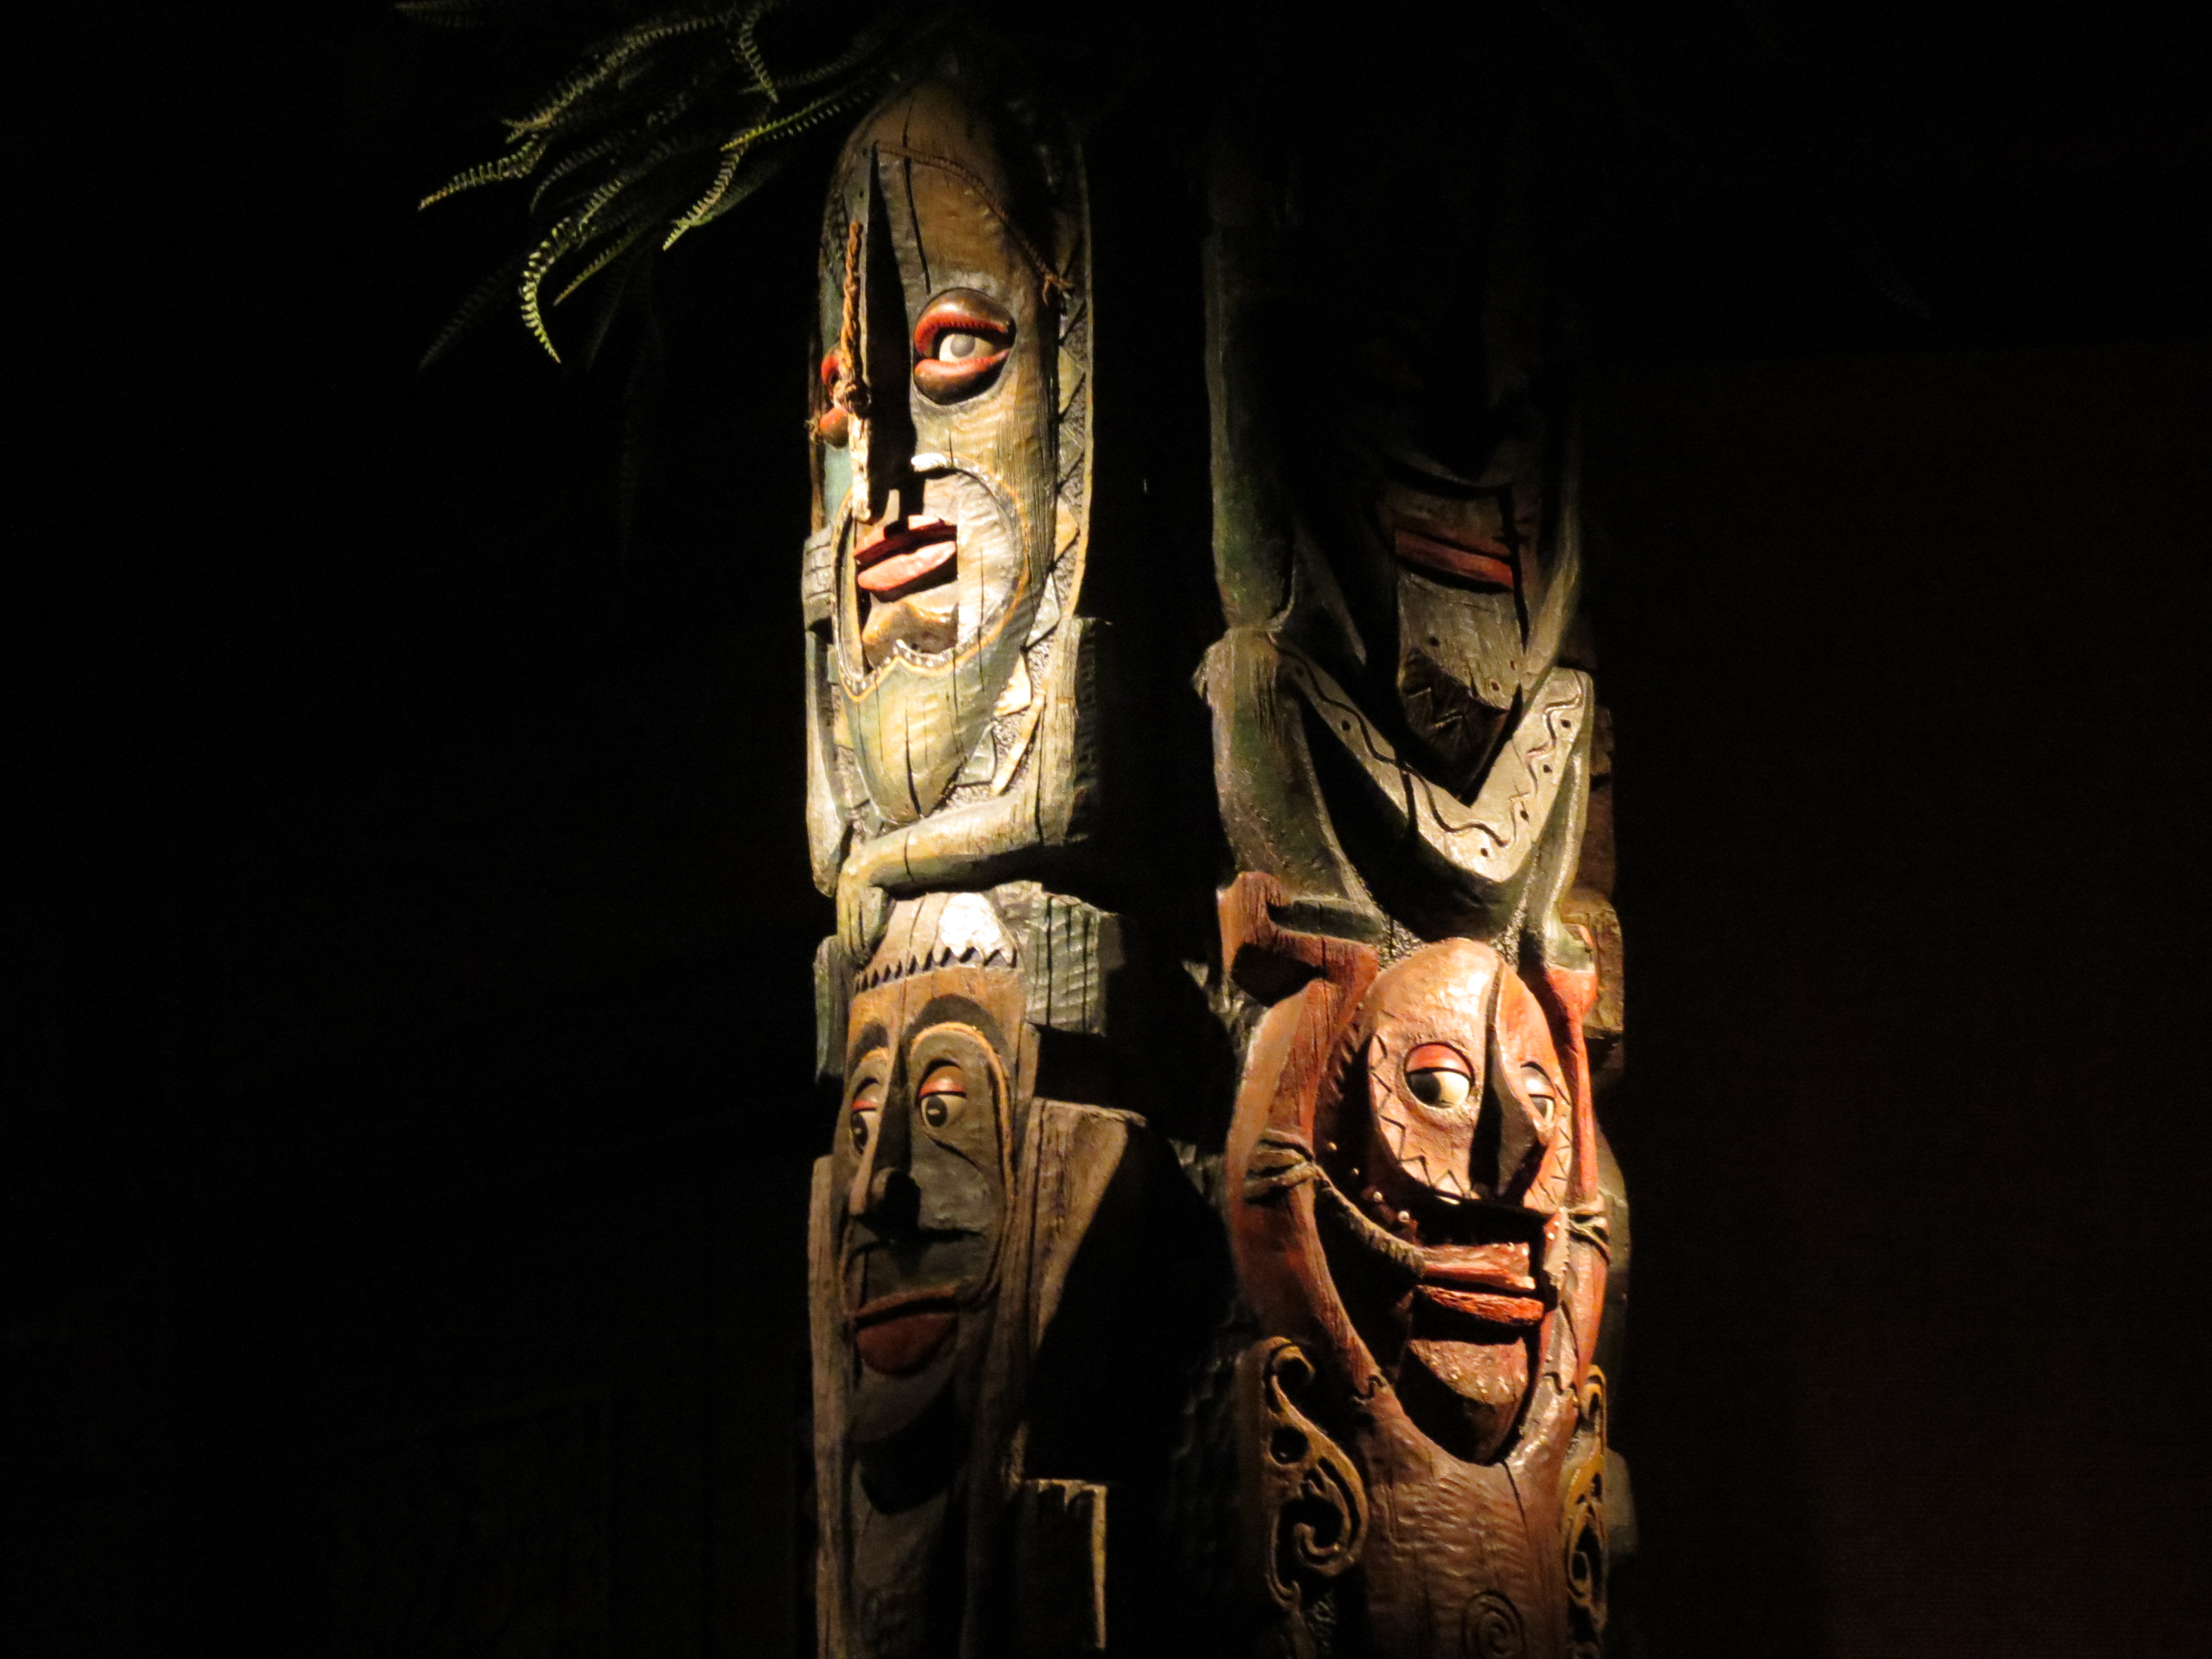 Terrific Tuesdays: The Enchanted Tiki Room